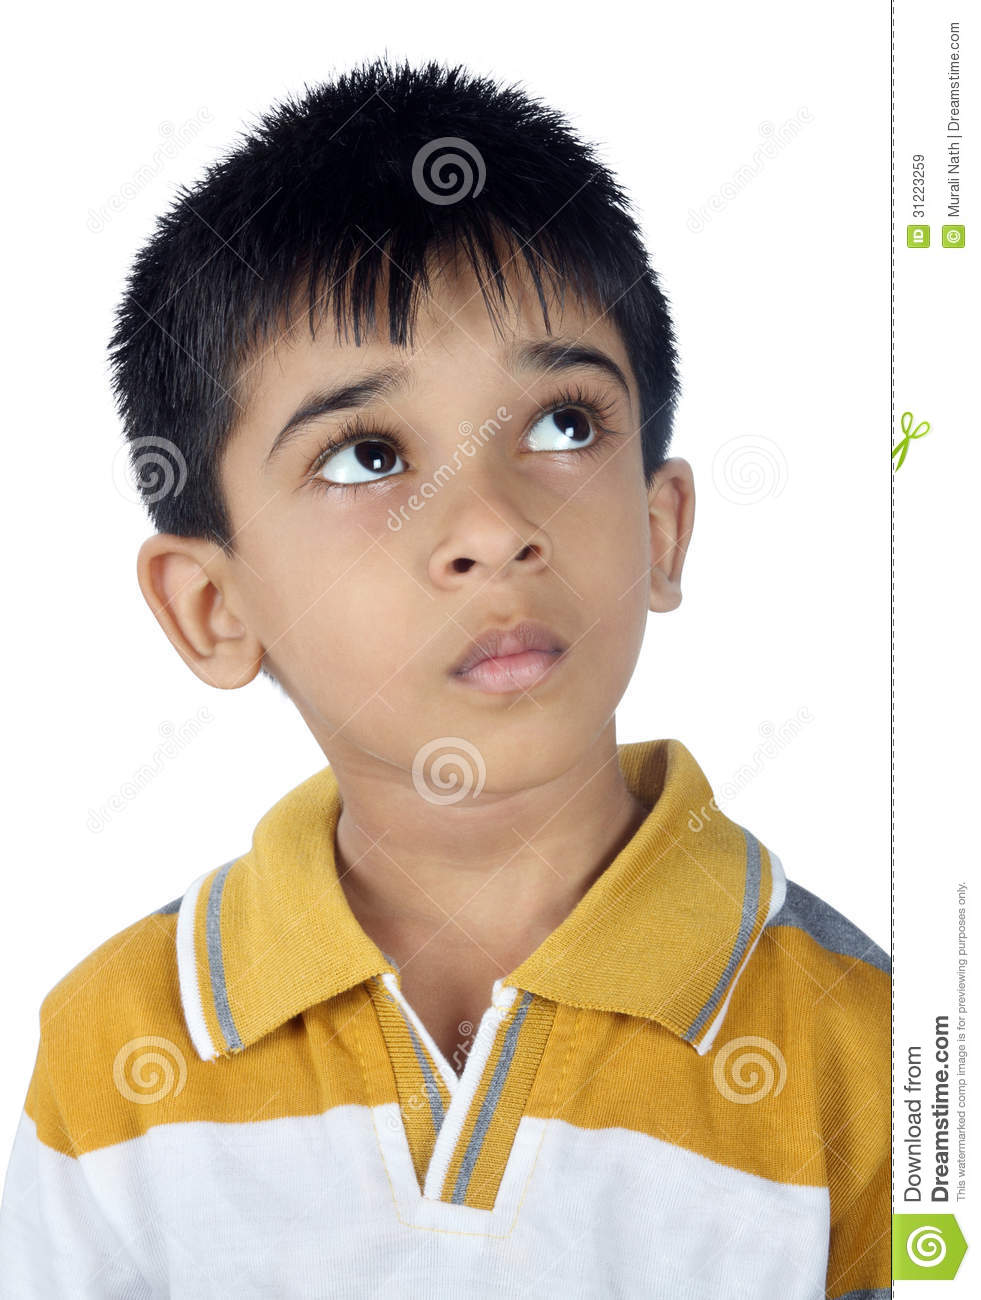 Depressed indian boy looking up royalty free stock images image